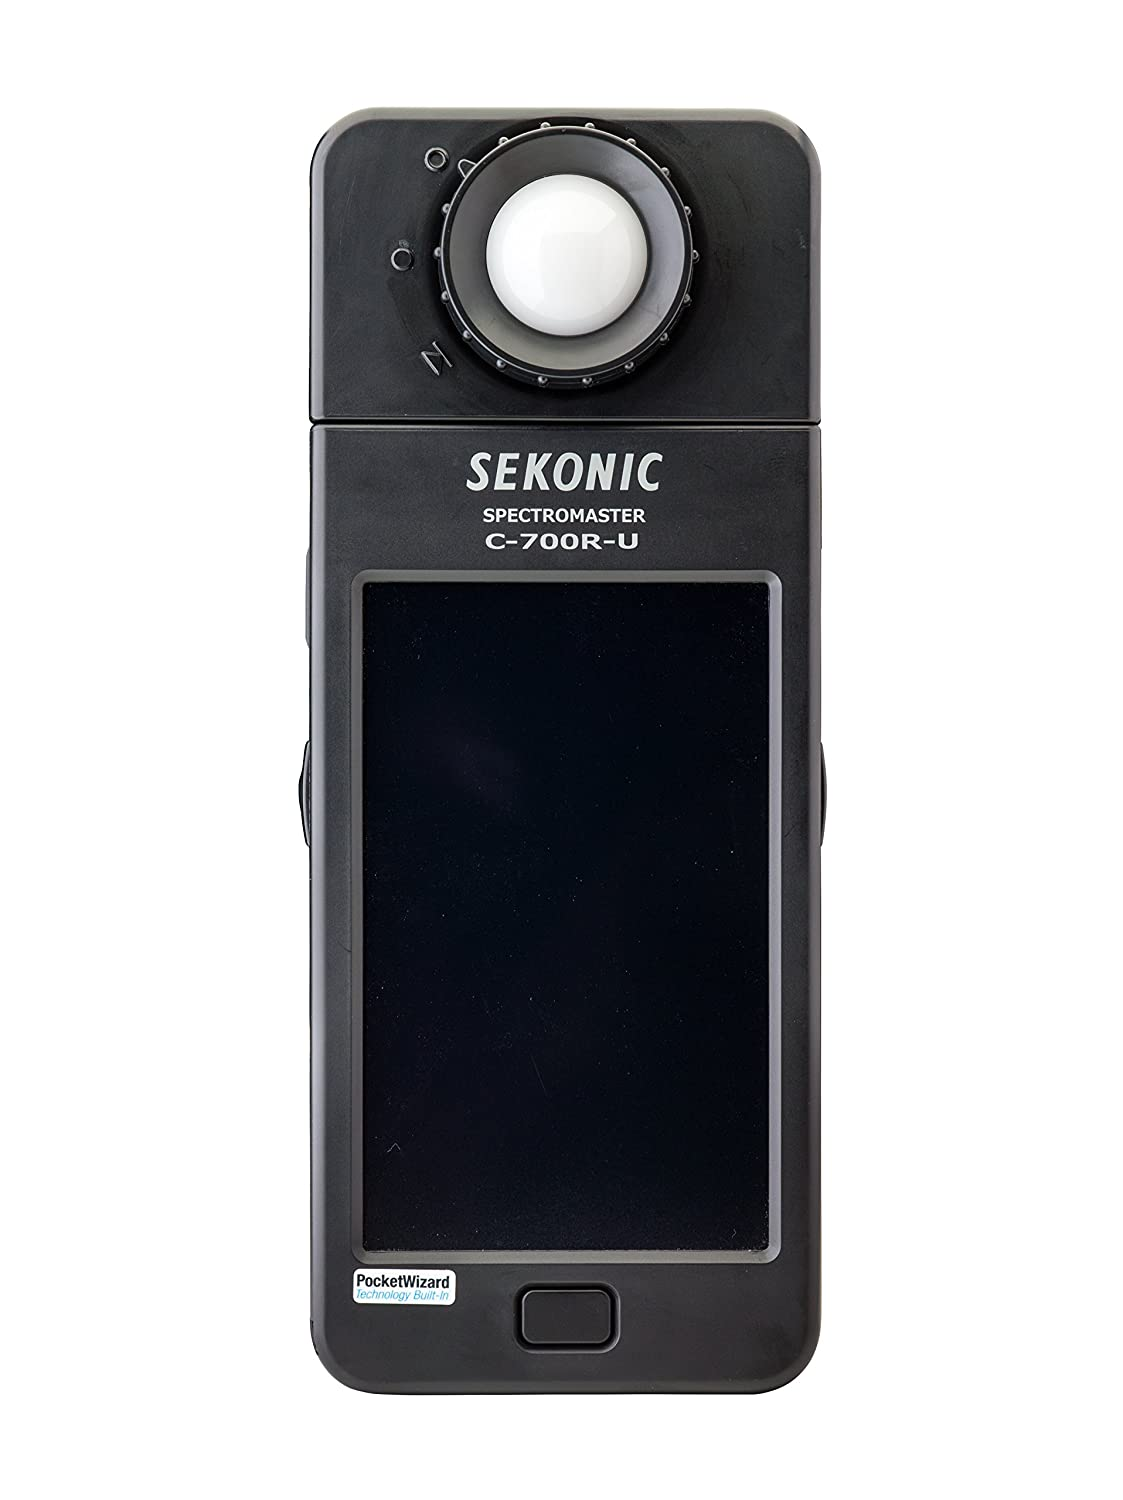 Sekonic Corporation 401-700 C-700 Spectromaster Color Meter (Black) MacGroup 401-702